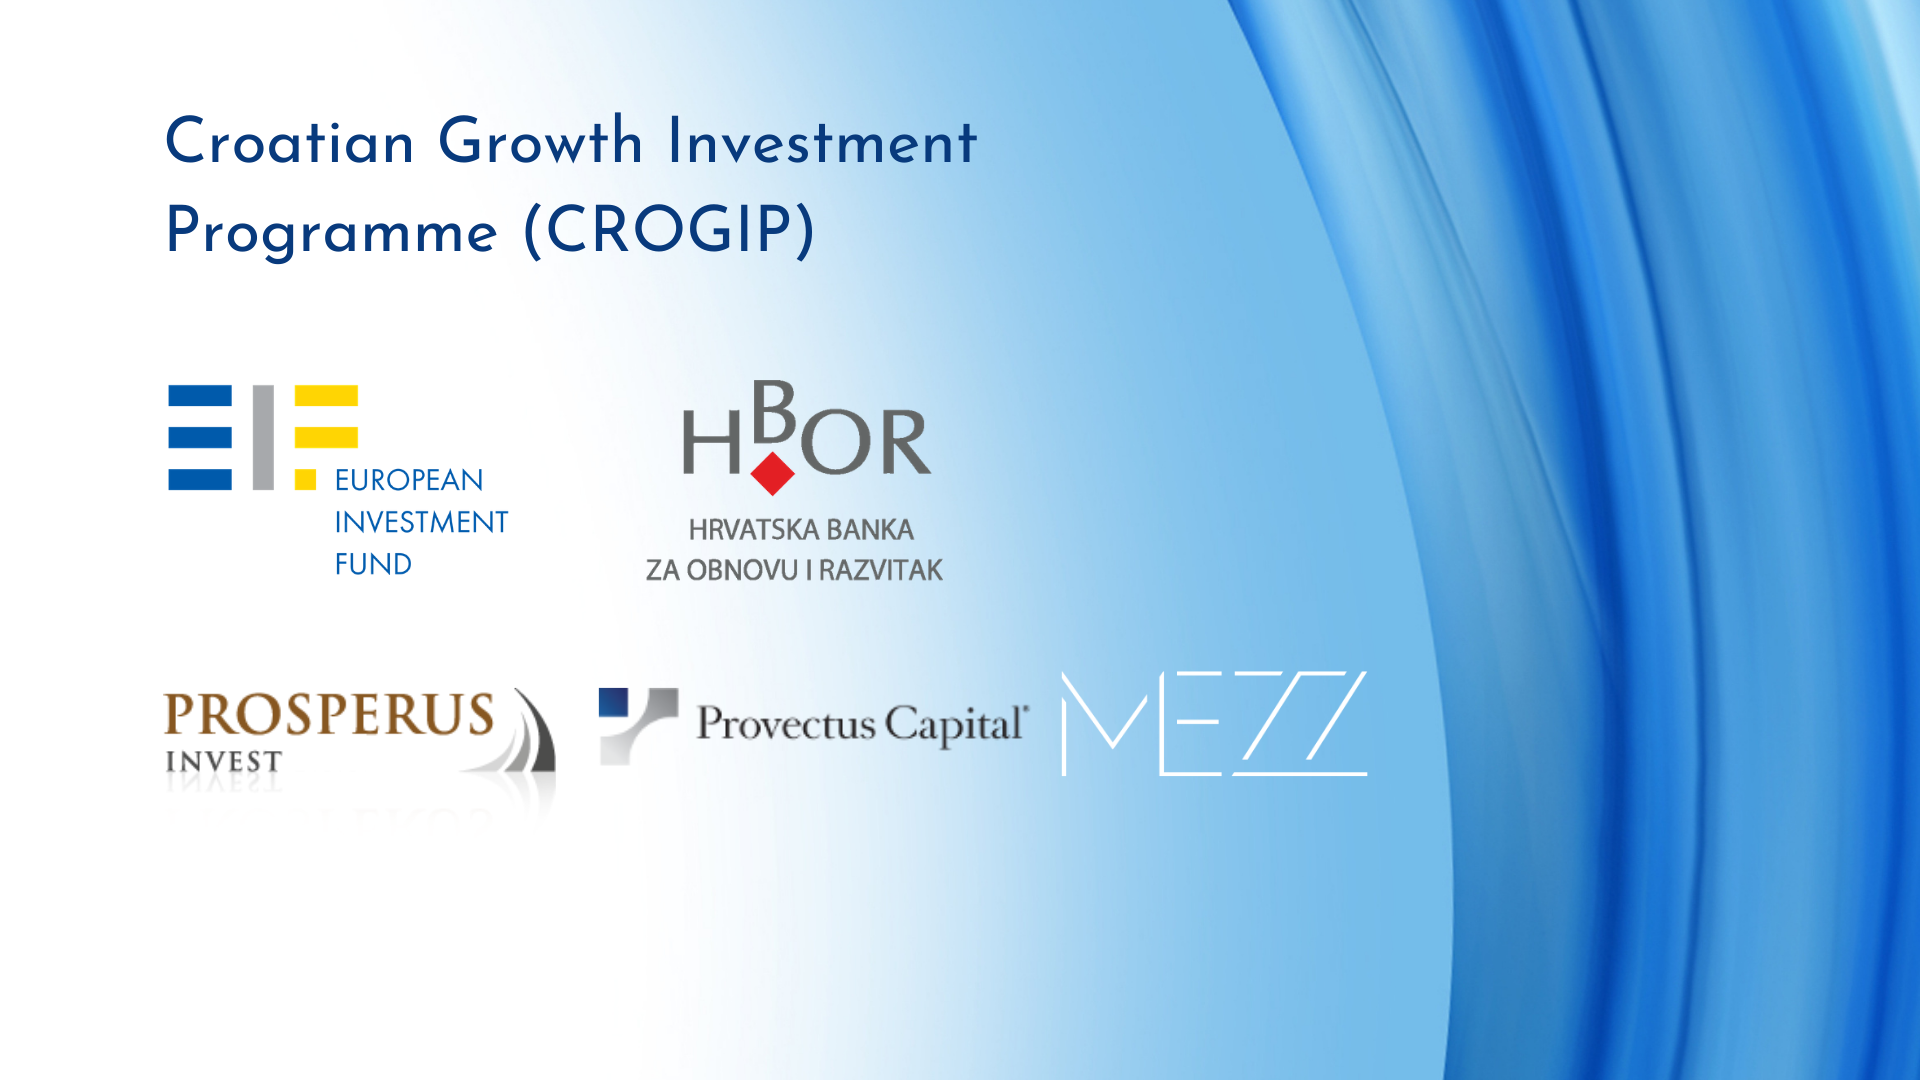 EIF and HBOR invest in three equity funds in Croatia unlocking potential €205 million for local SMEs and Mid-Caps